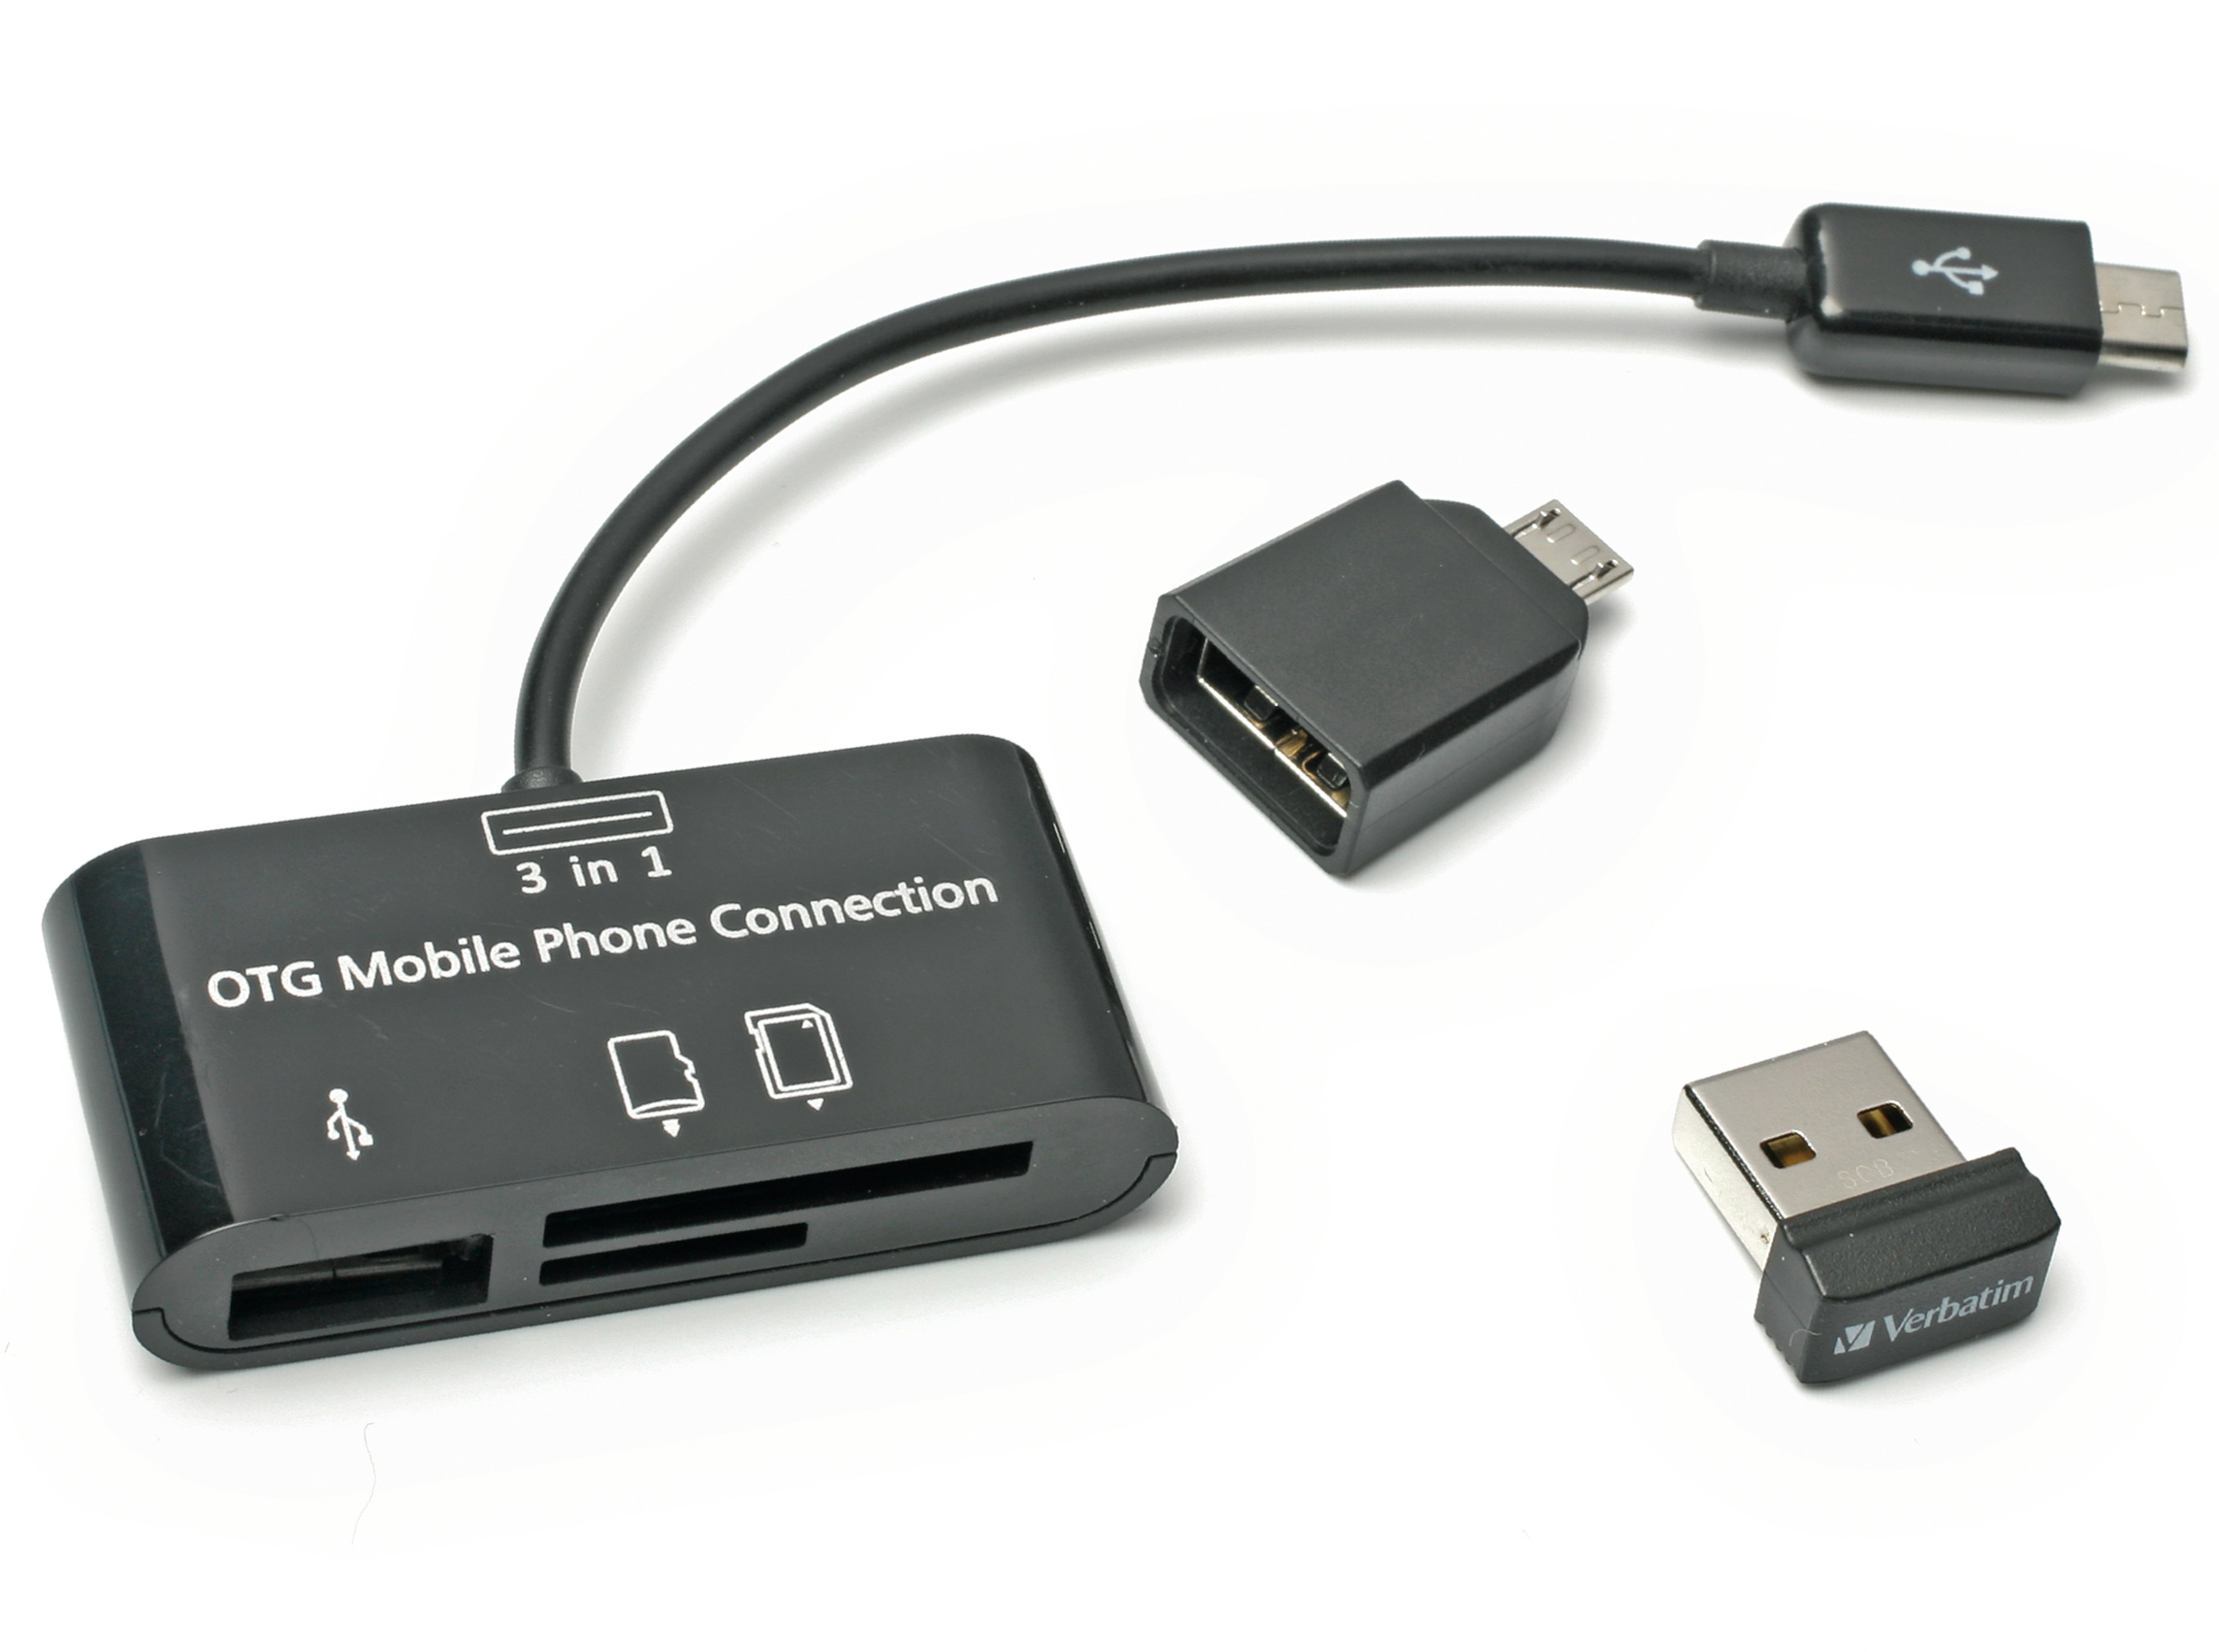 Micro Usb Kabel Unterschiede Wie Funktioniert Usb On The Go Otg C 39t Magazin